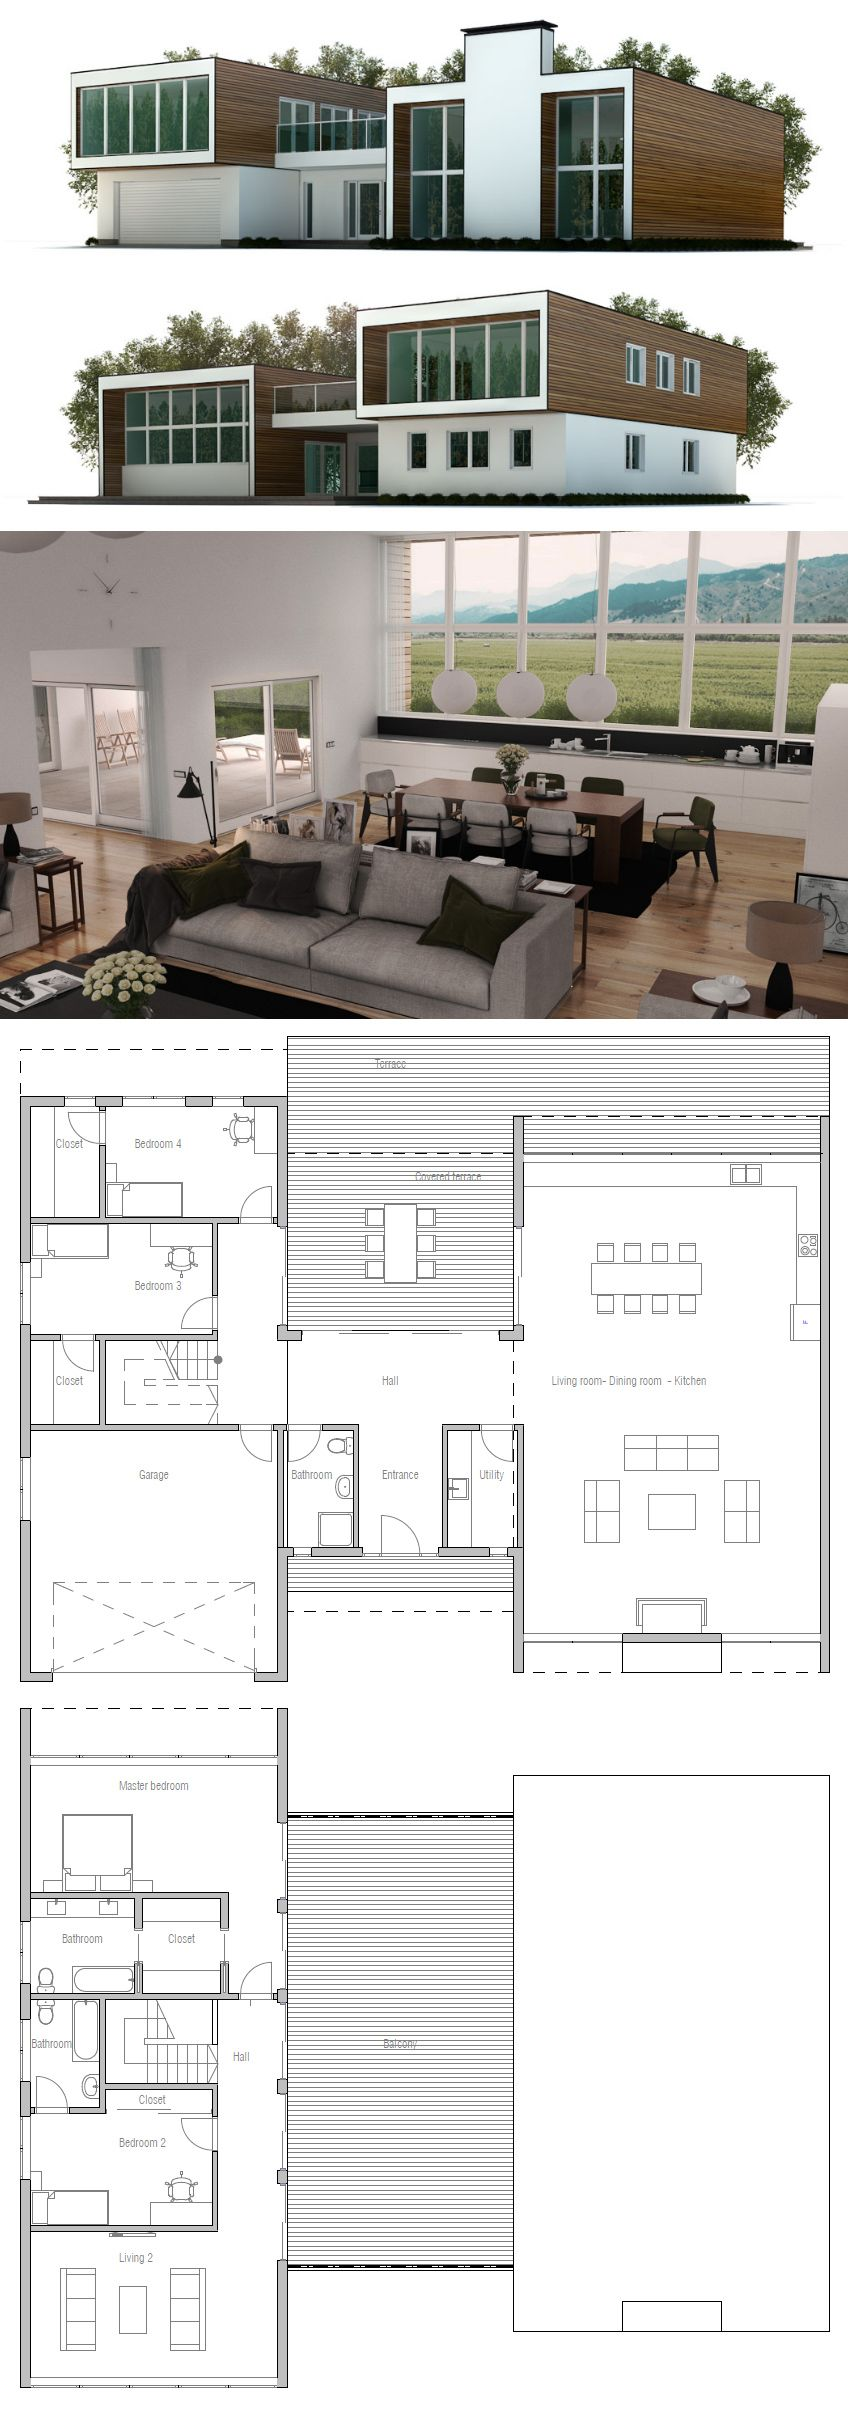 Modern House Plan Plans Pinterest House Plans House And House